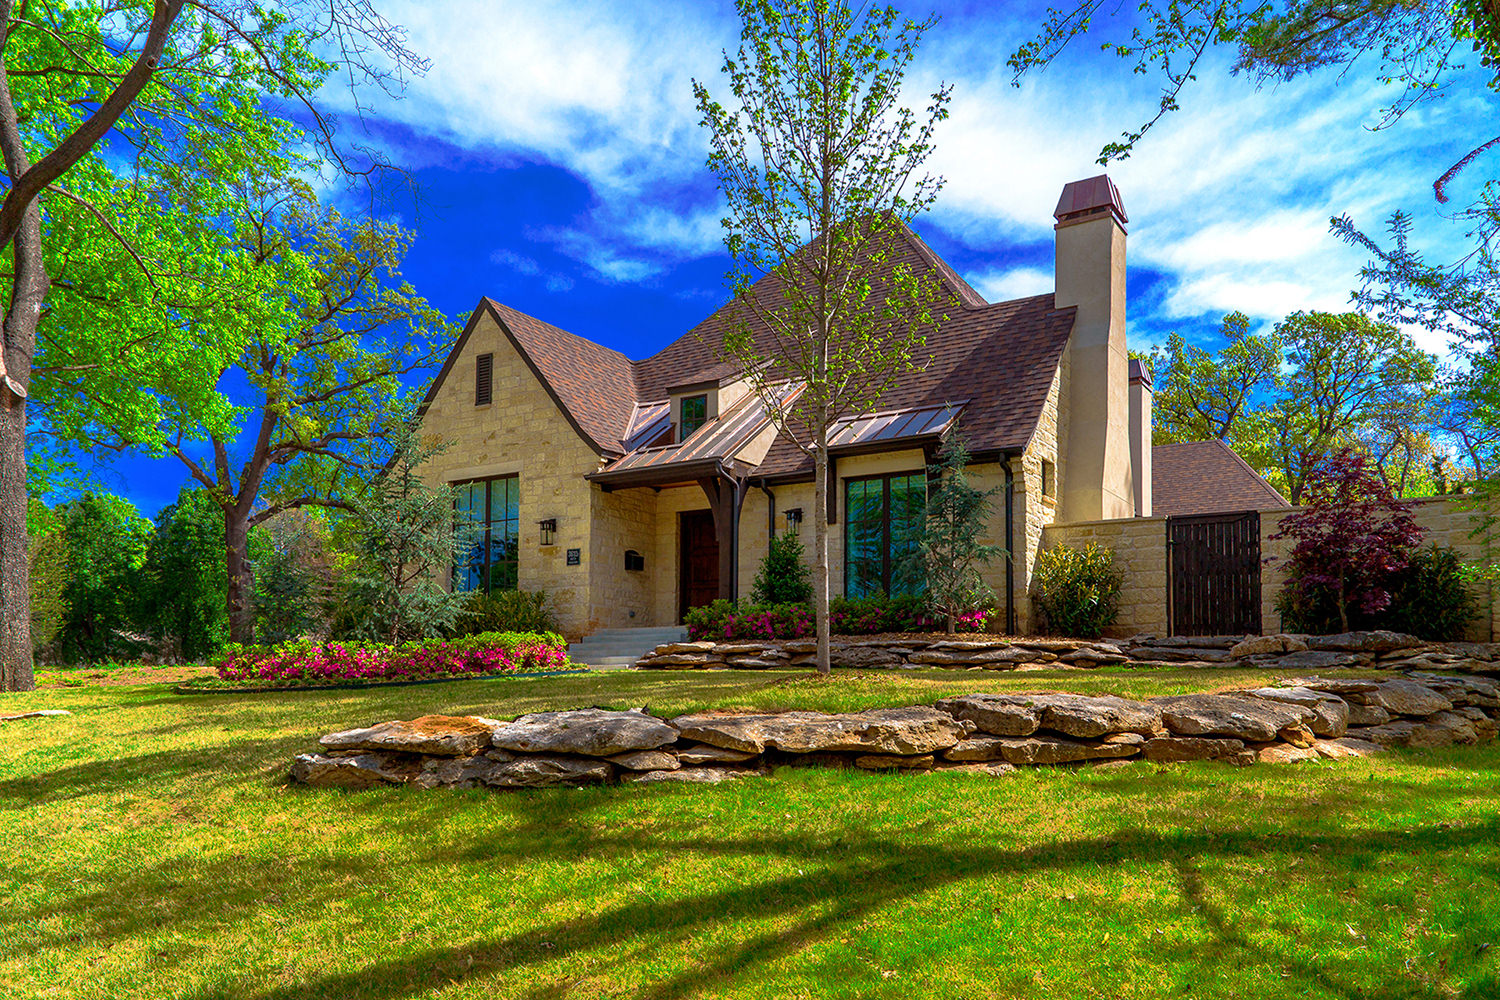 French Country Style House Lessley Residence Bainbridge Design Group